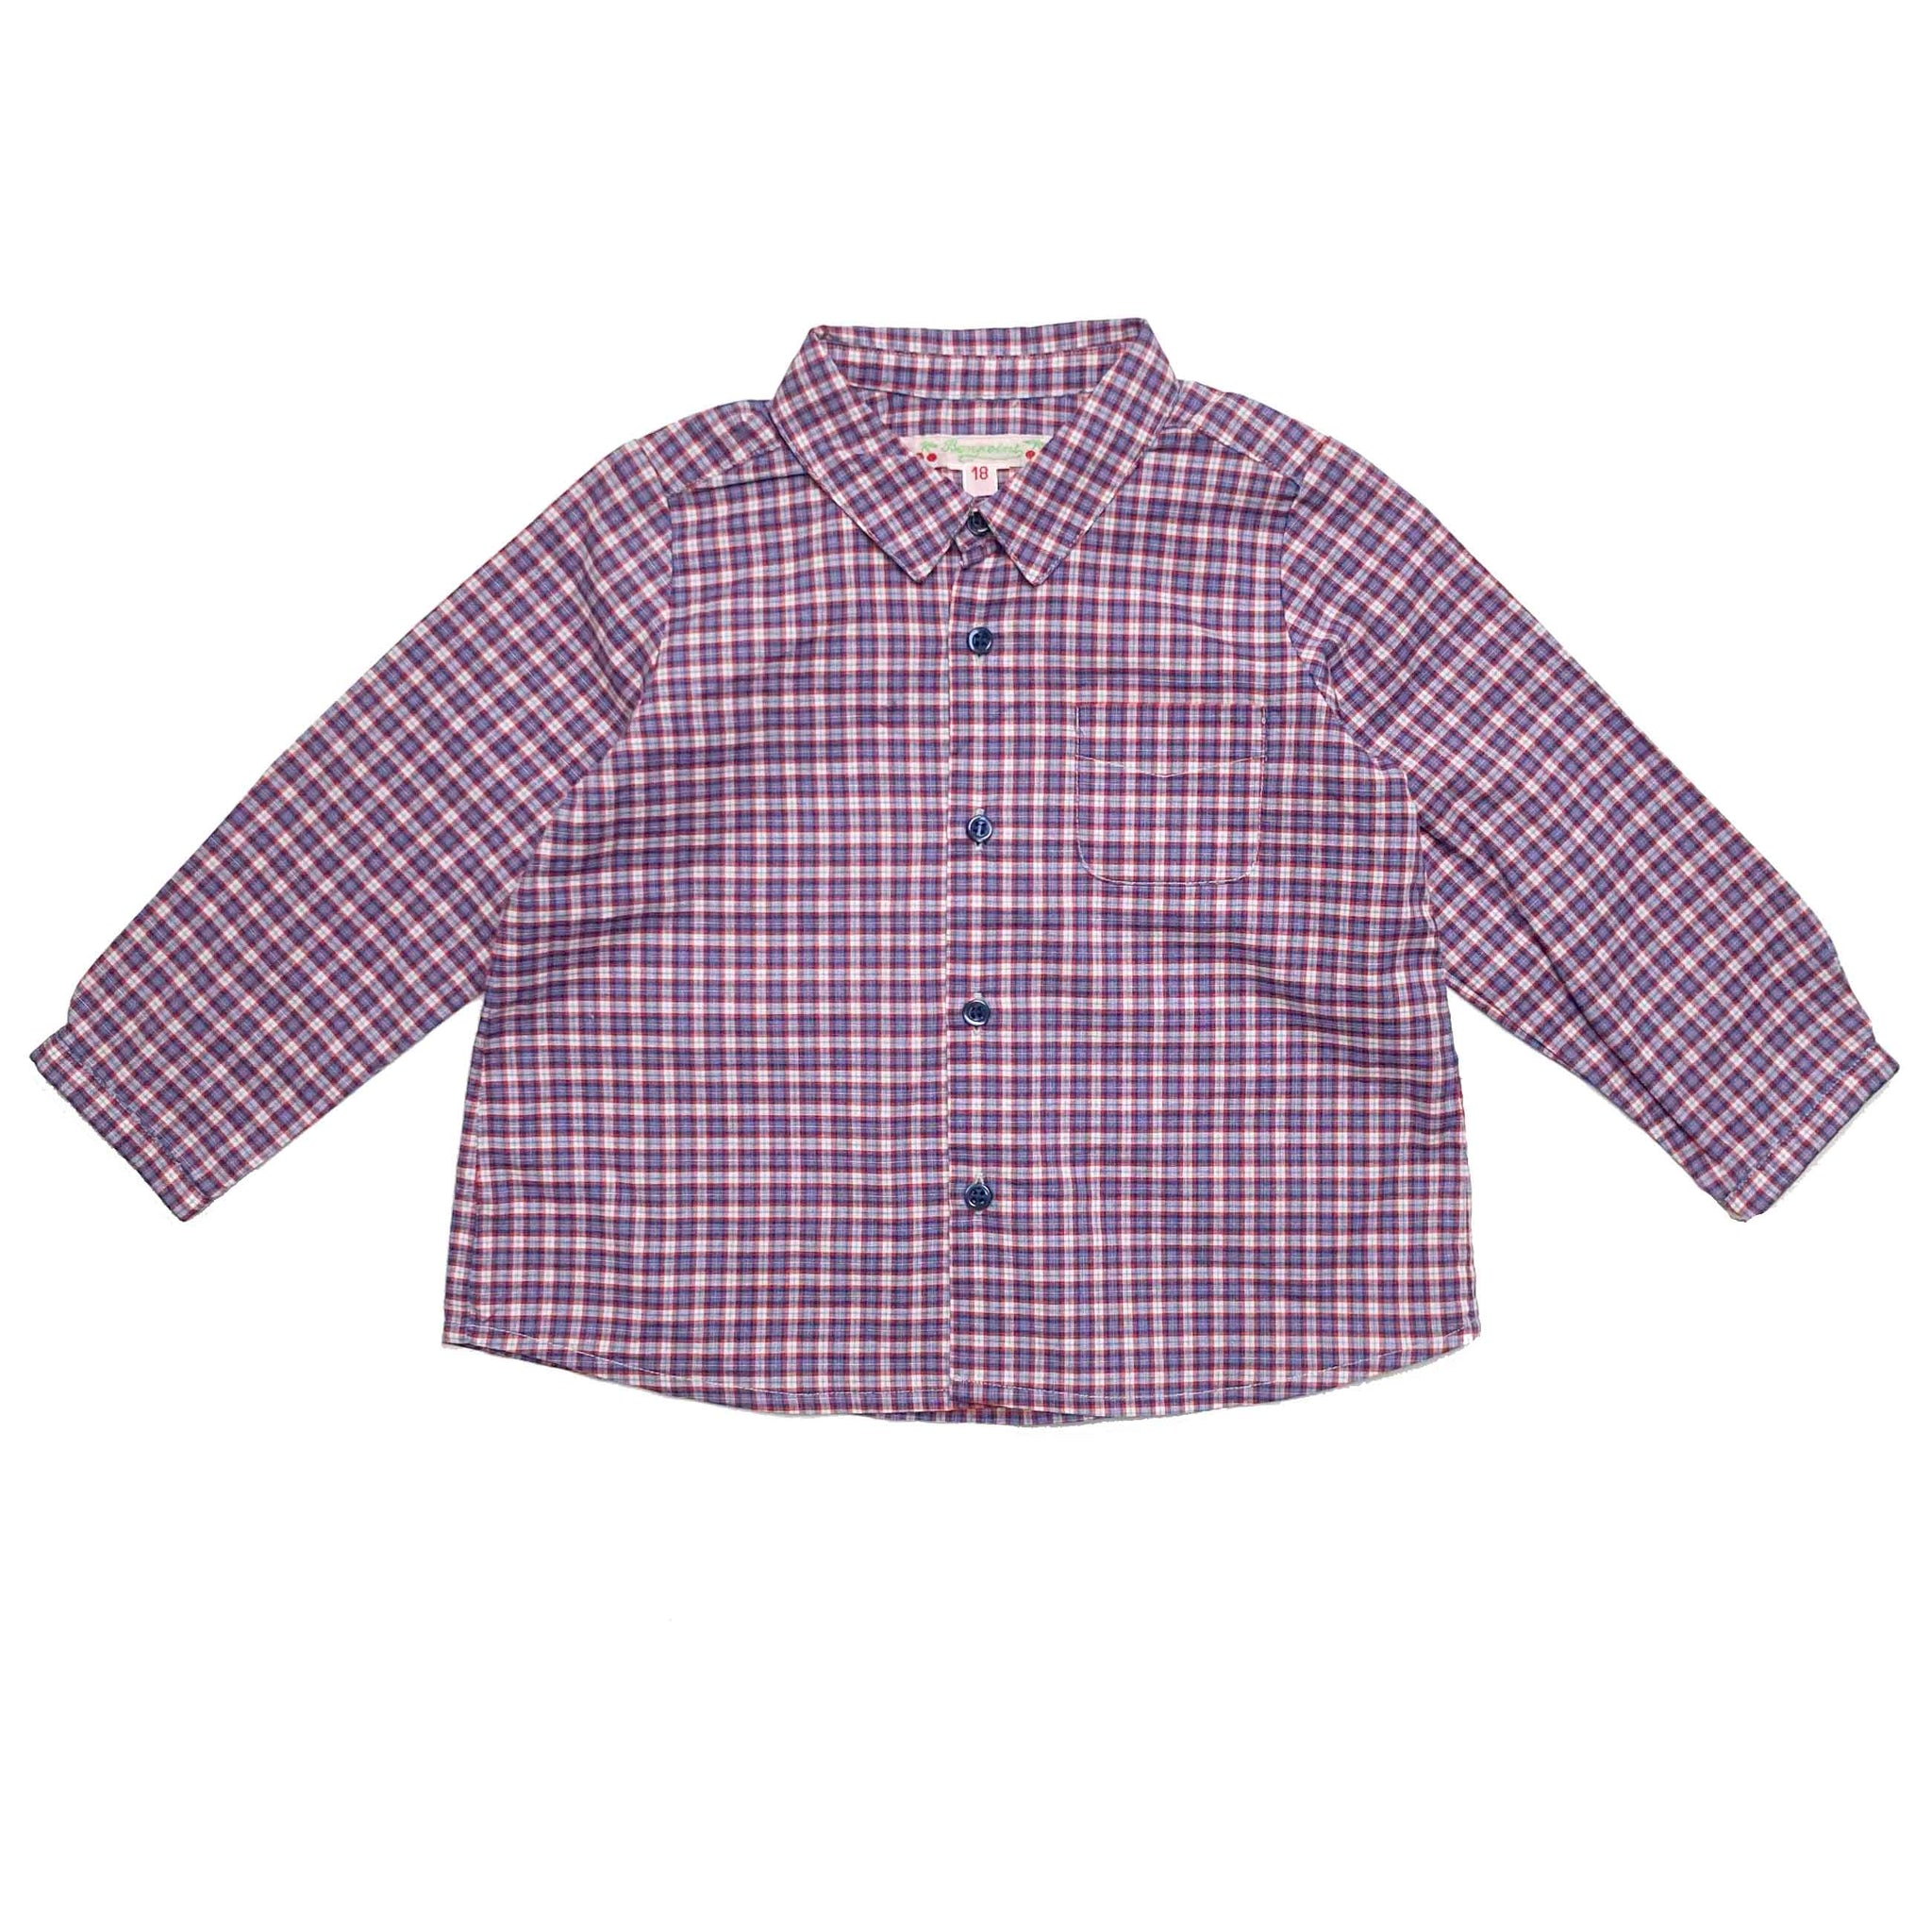 BONPOINT RED CHECK SHIRT 18 MONTHS